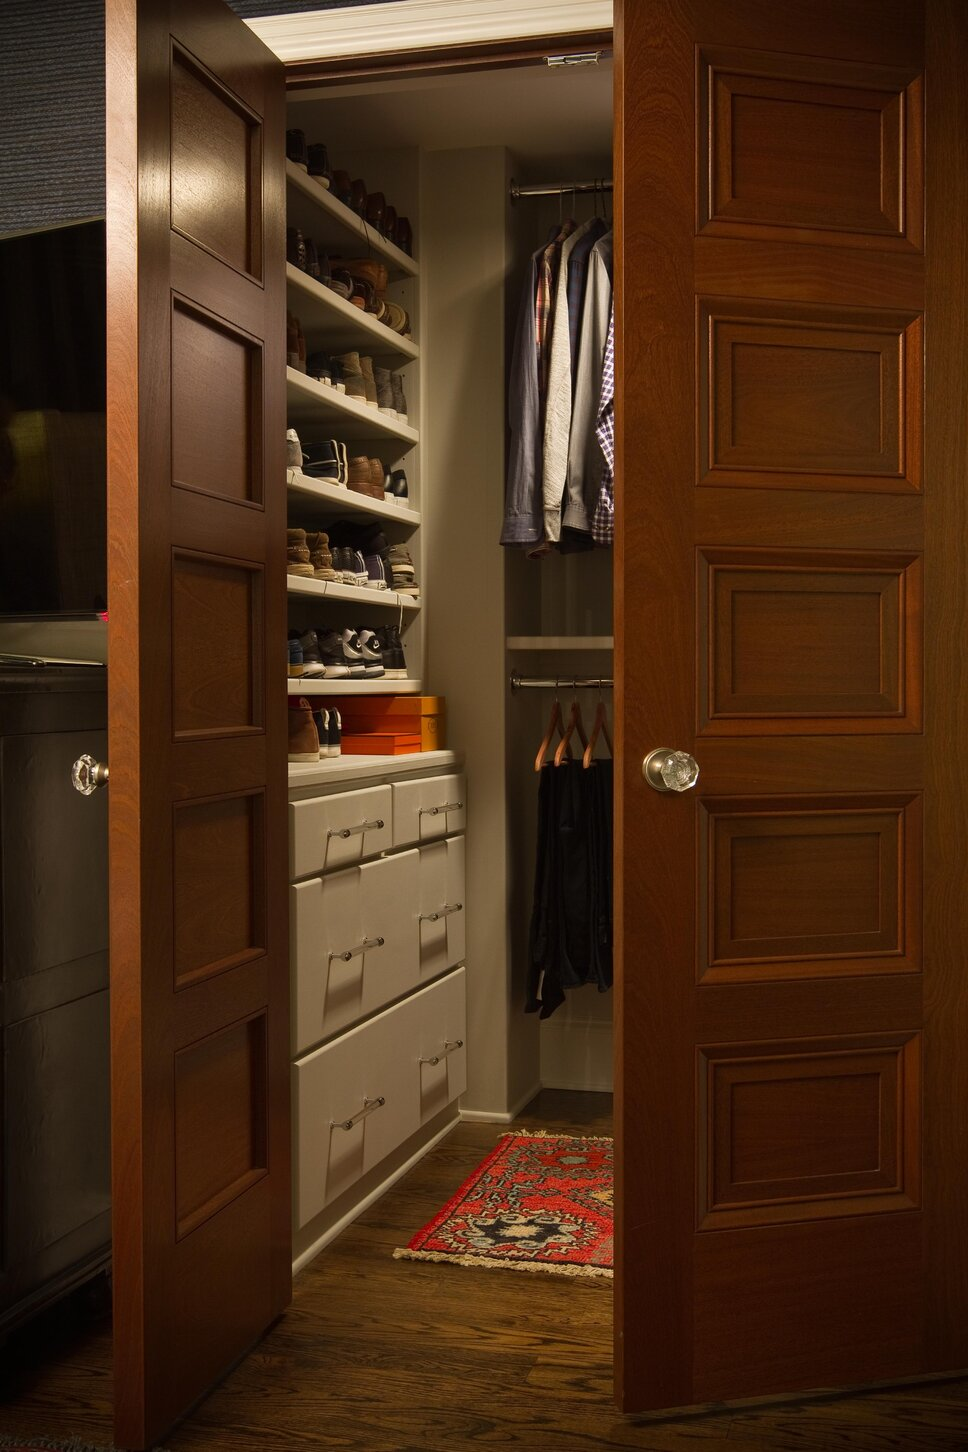 Interior Design by SHOPHOUSE Design Eclectic Storage design